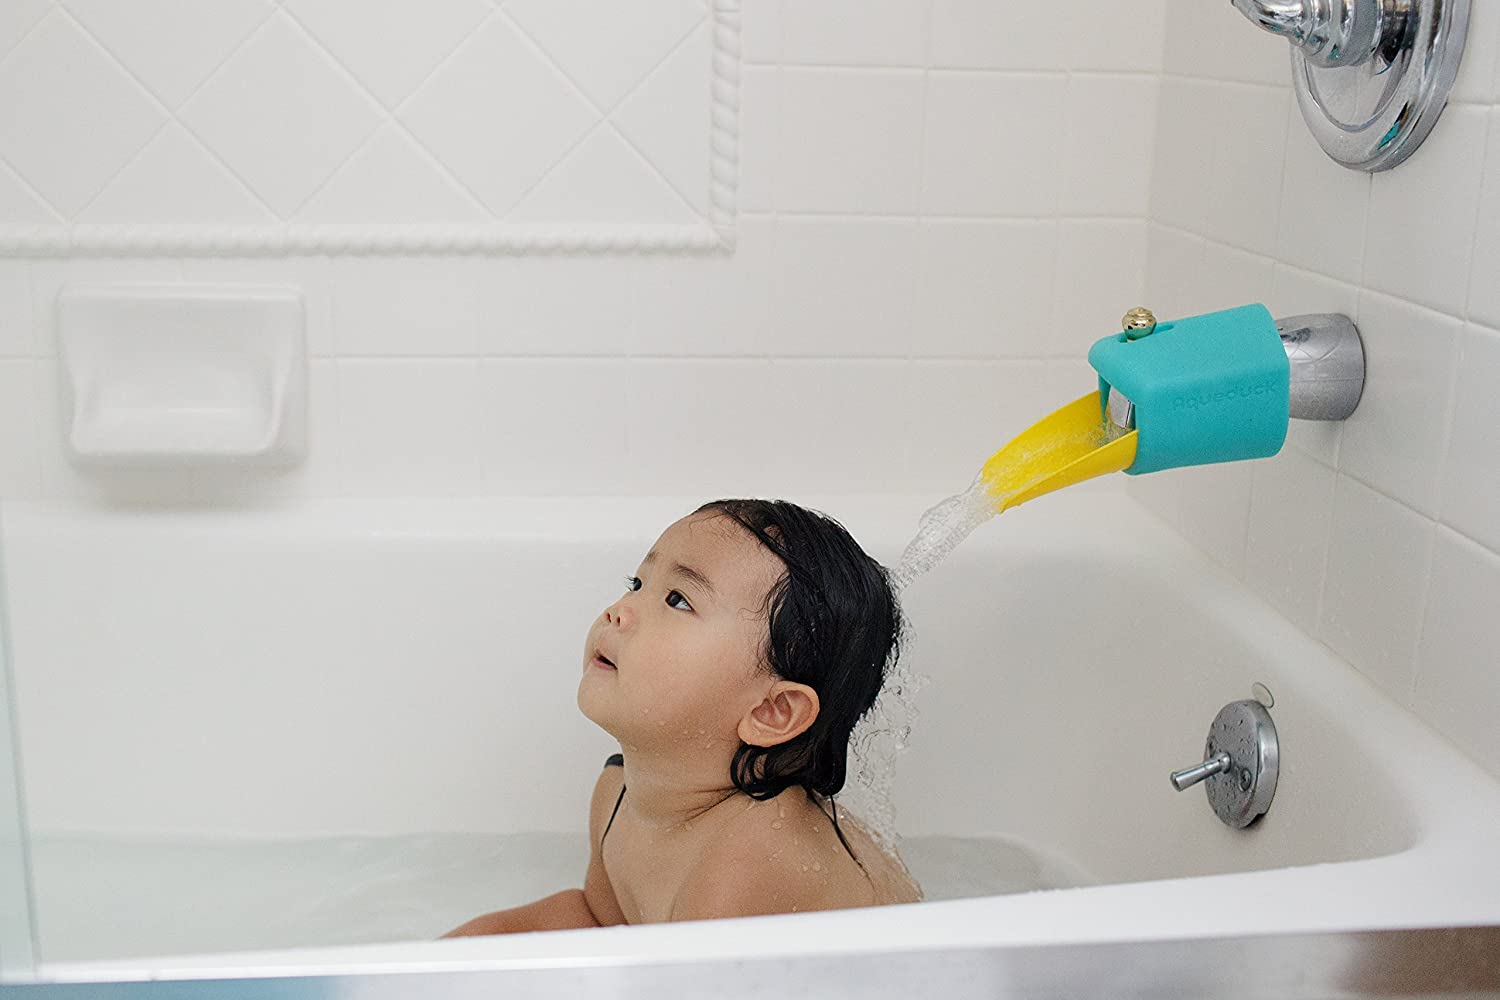 Amazon.com : Aqueduck Bath Spout Extender Plus Cover : Baby